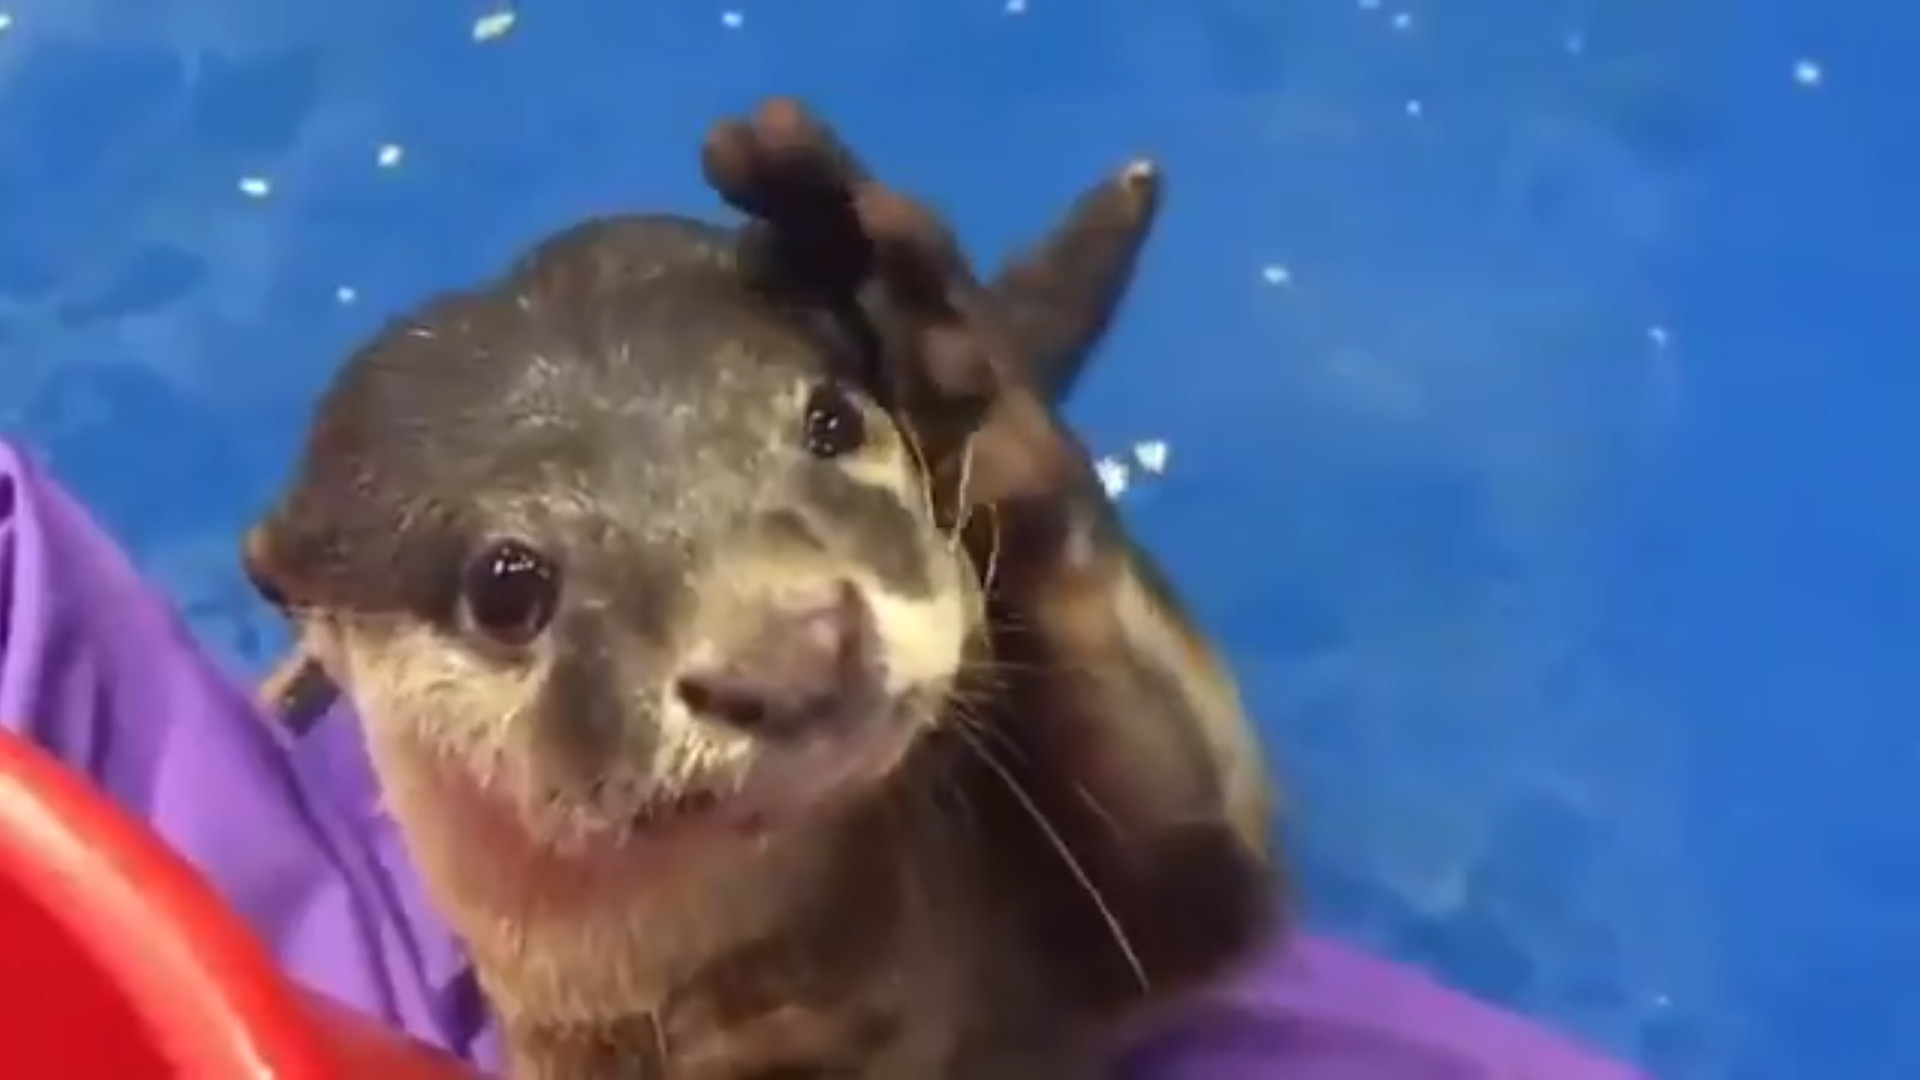 Otter shows where to pet on head